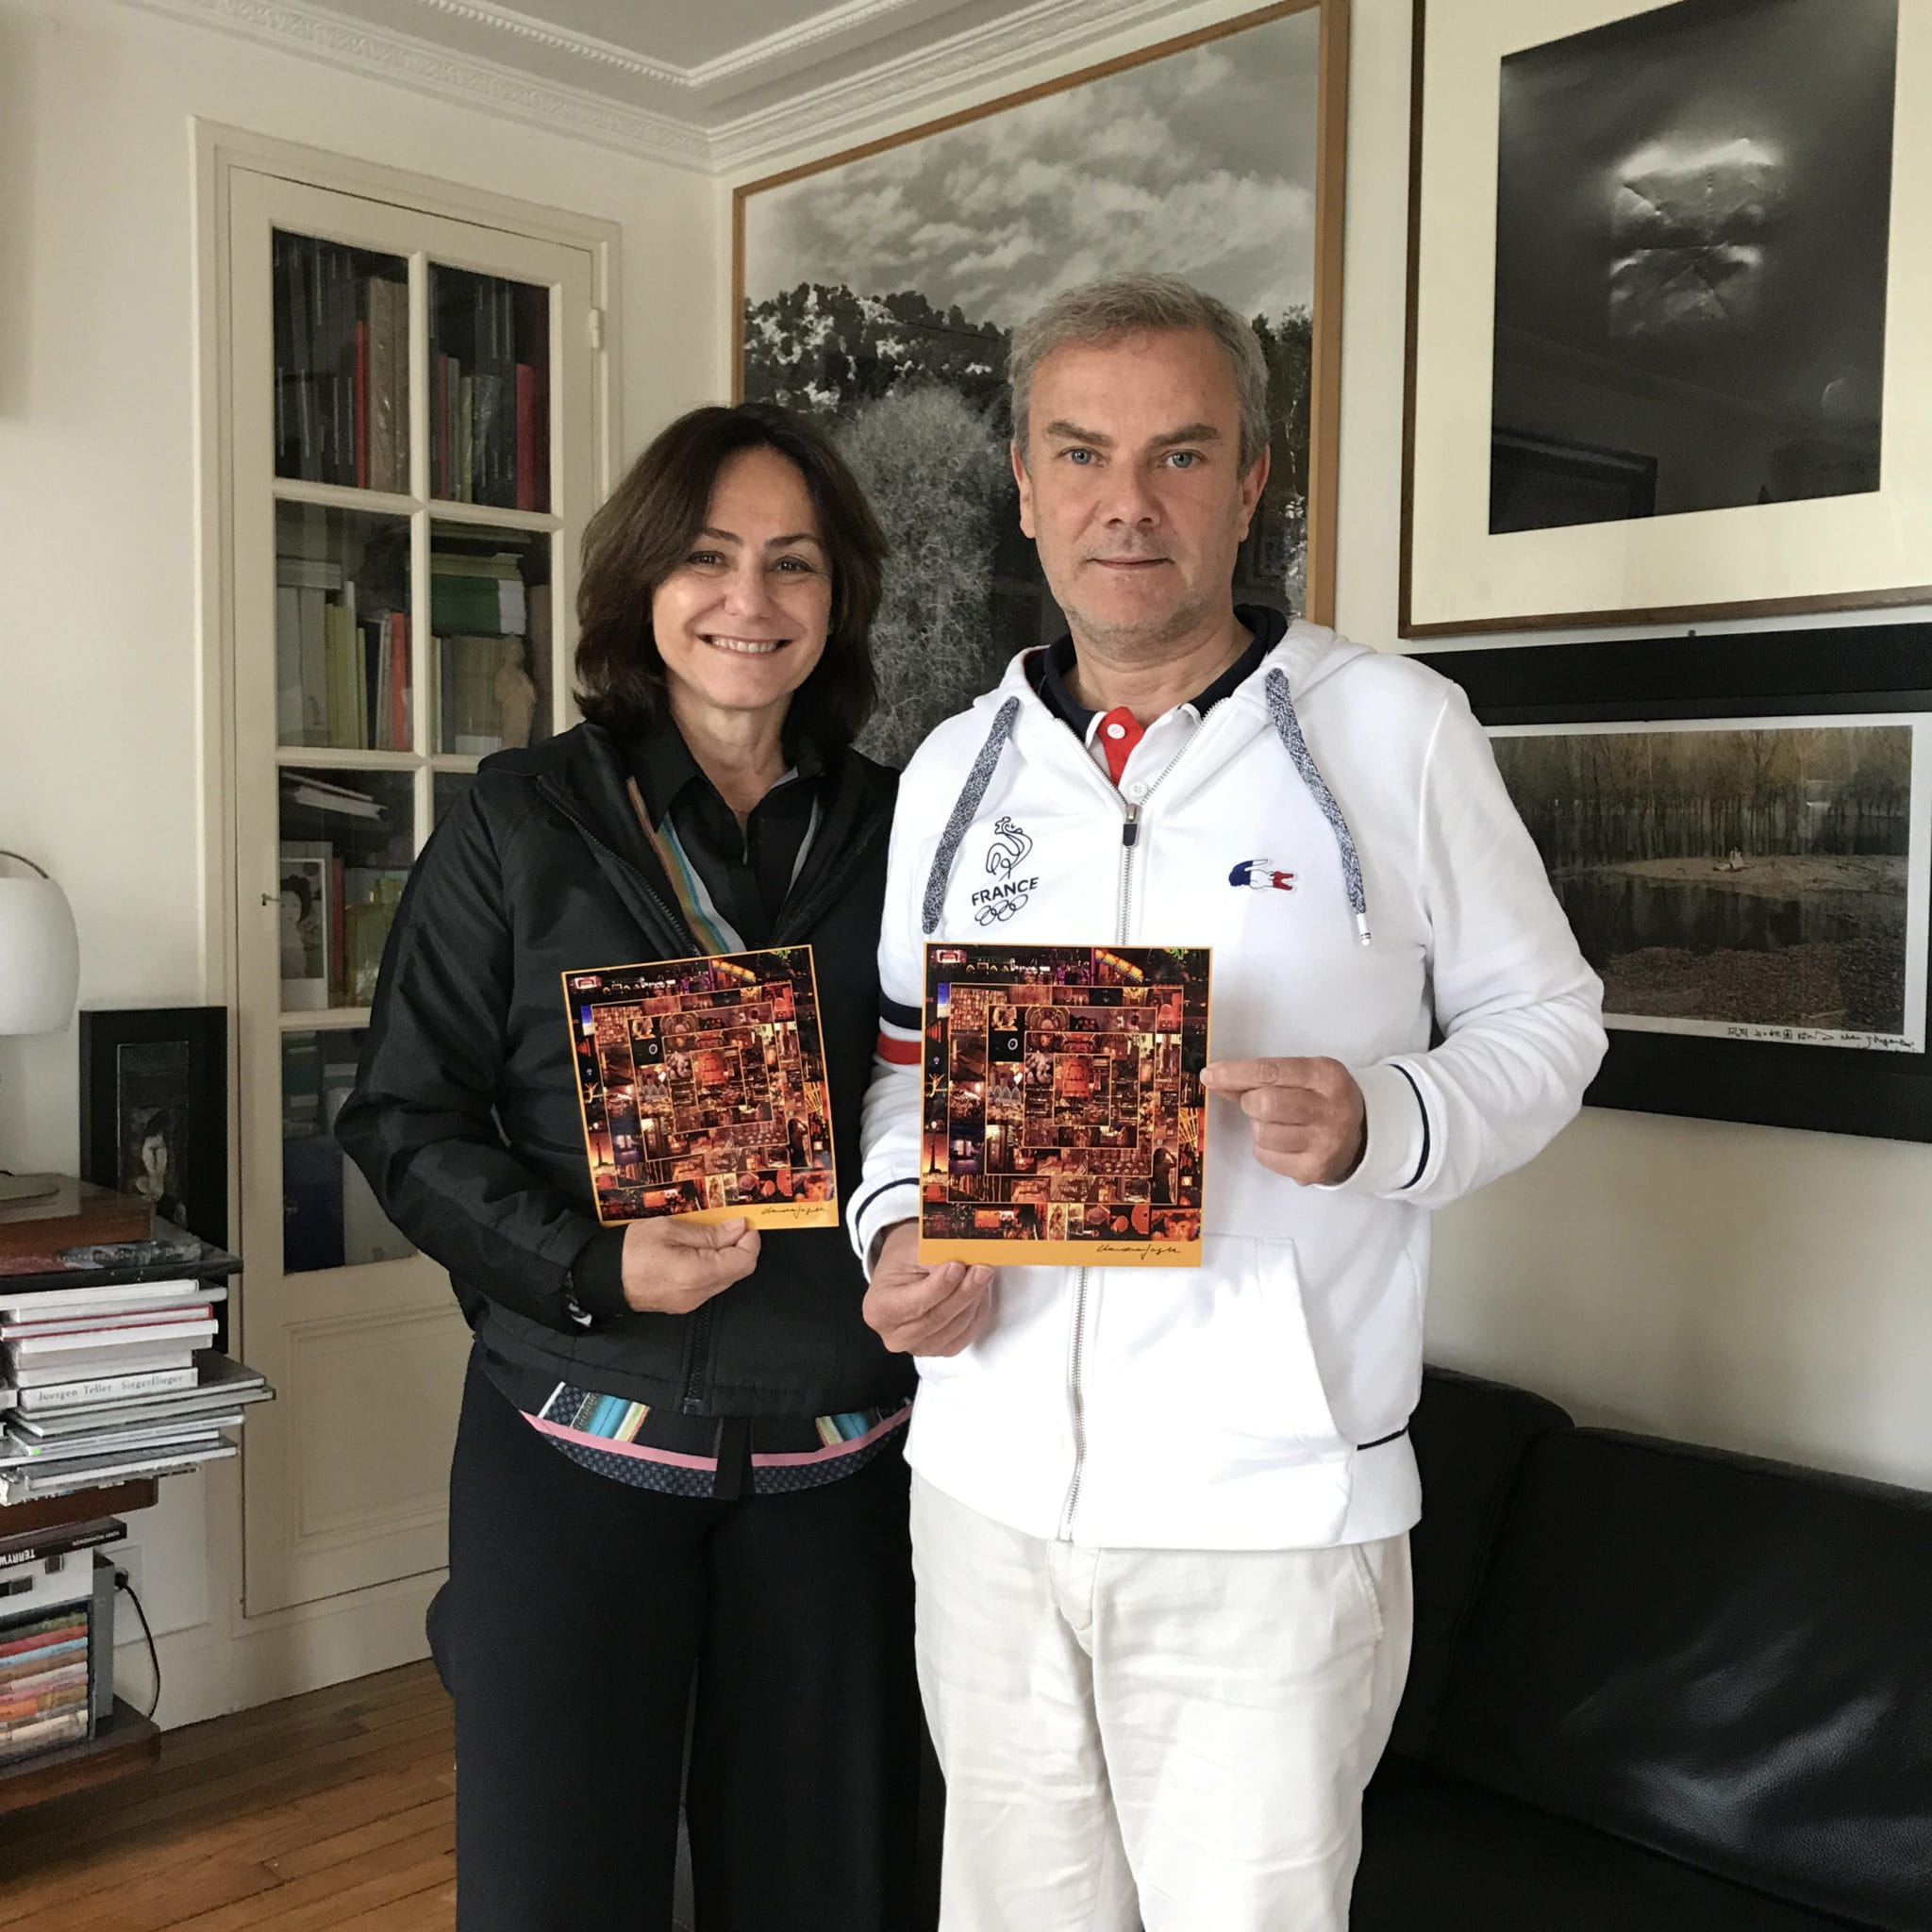 Claudia Jaguaribe, Brazilian artist, after signed his pictures for the next projet photobook «Beijing Overshoot», at home, ready to print. a magic book about pollution and environment … Limited edition of 500 copies with this signed c print. An artist Edition of 30 copies is available too…